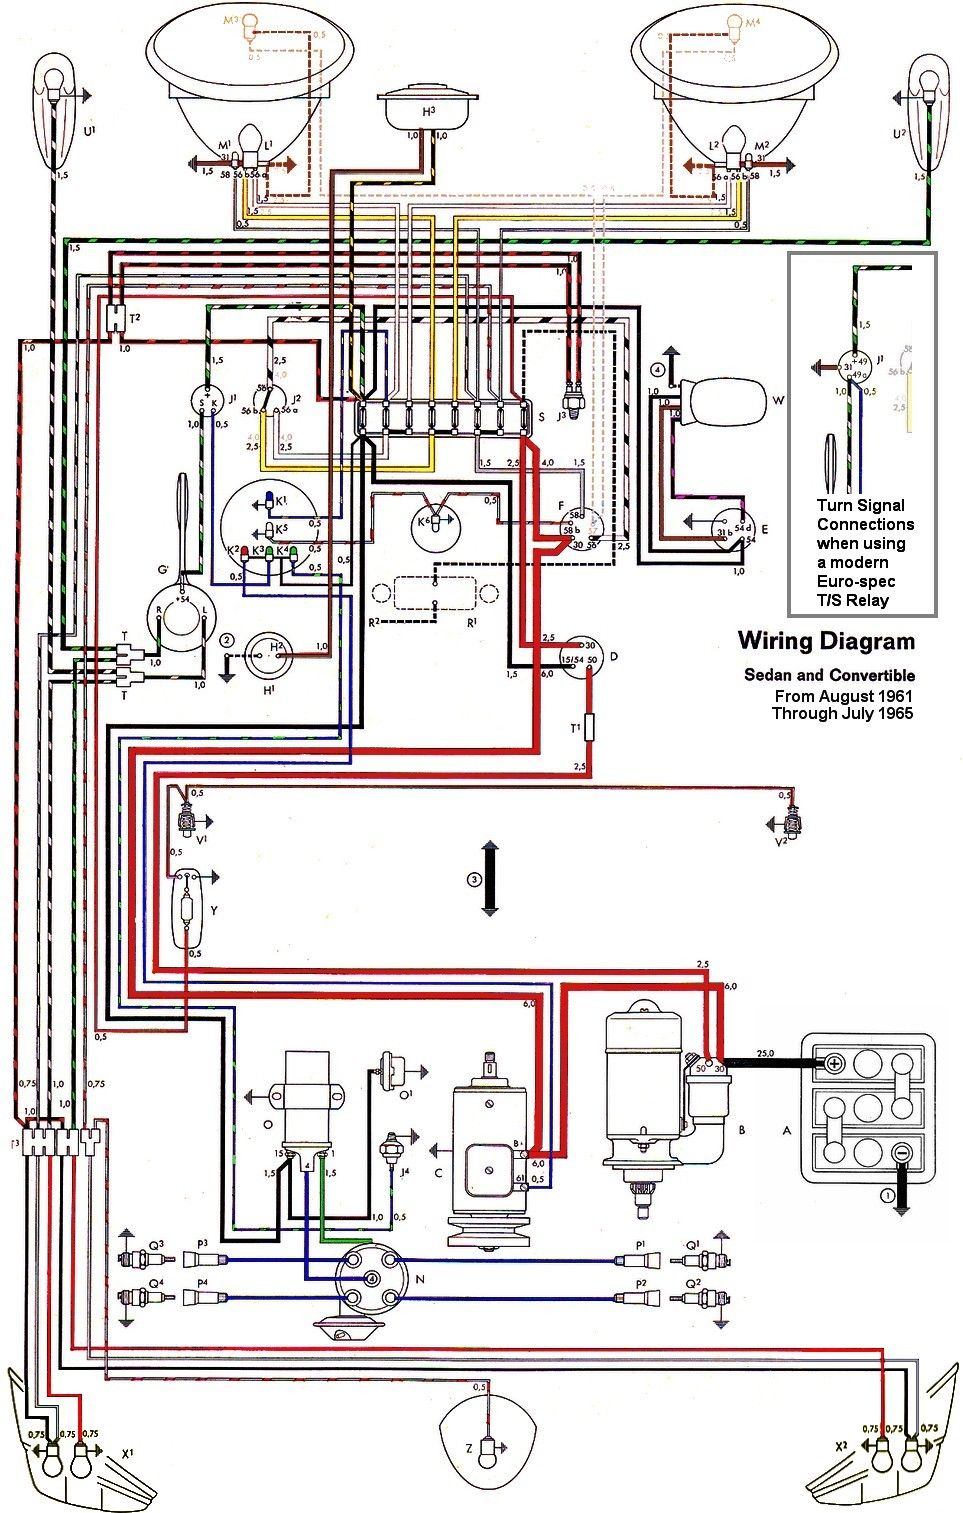 hight resolution of vw beetle wire diagram wiring diagram imp 1974 vw alternator wiring diagram 1974 vw wiring diagram